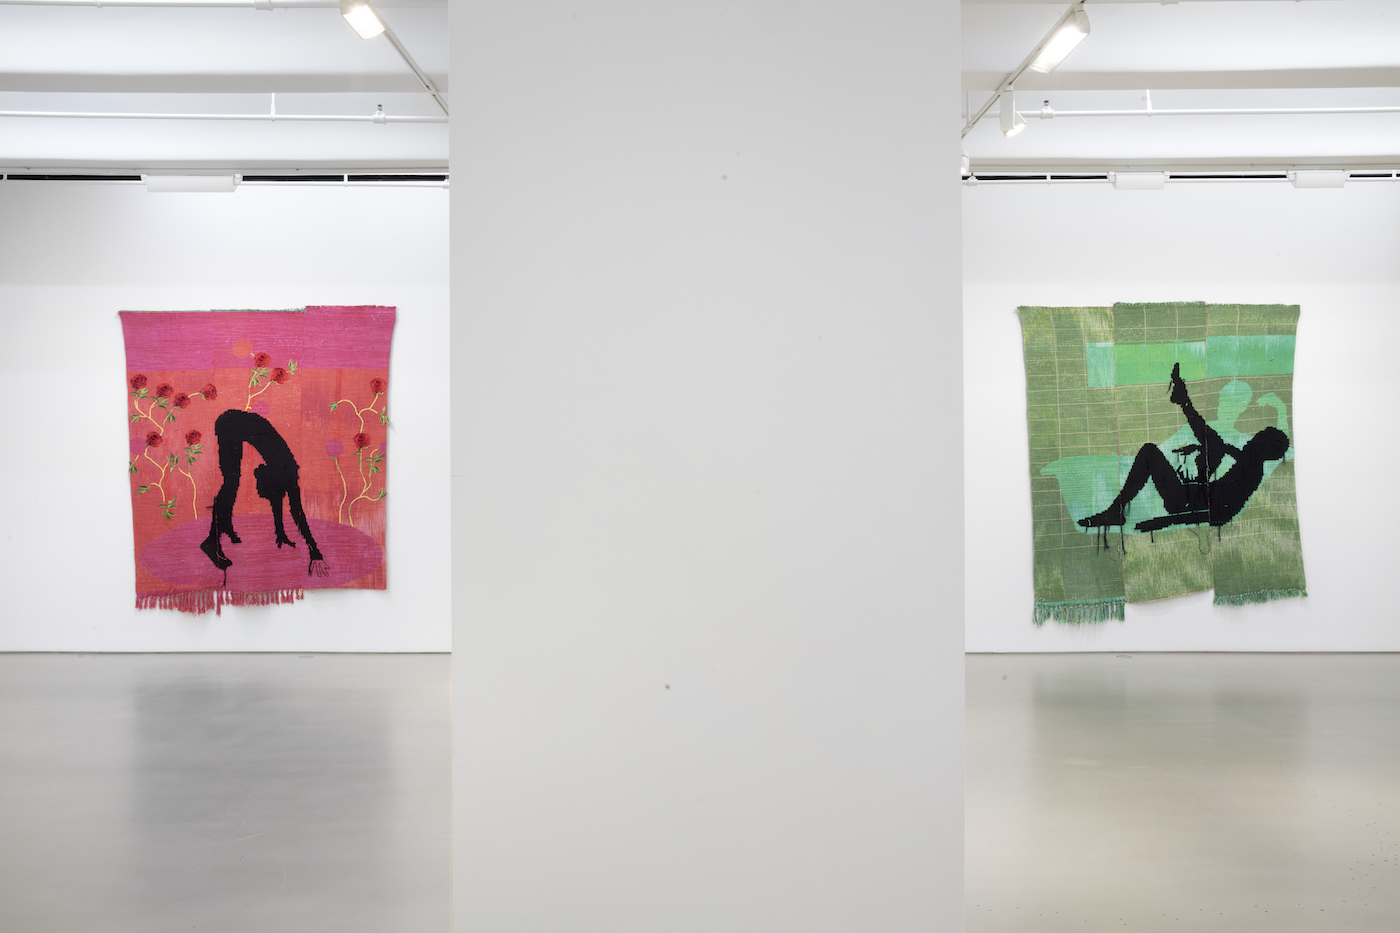 two textile print quilts by diedrick brackens in gallery space; two pieces depict silhouette figures against green and pink backgrounds